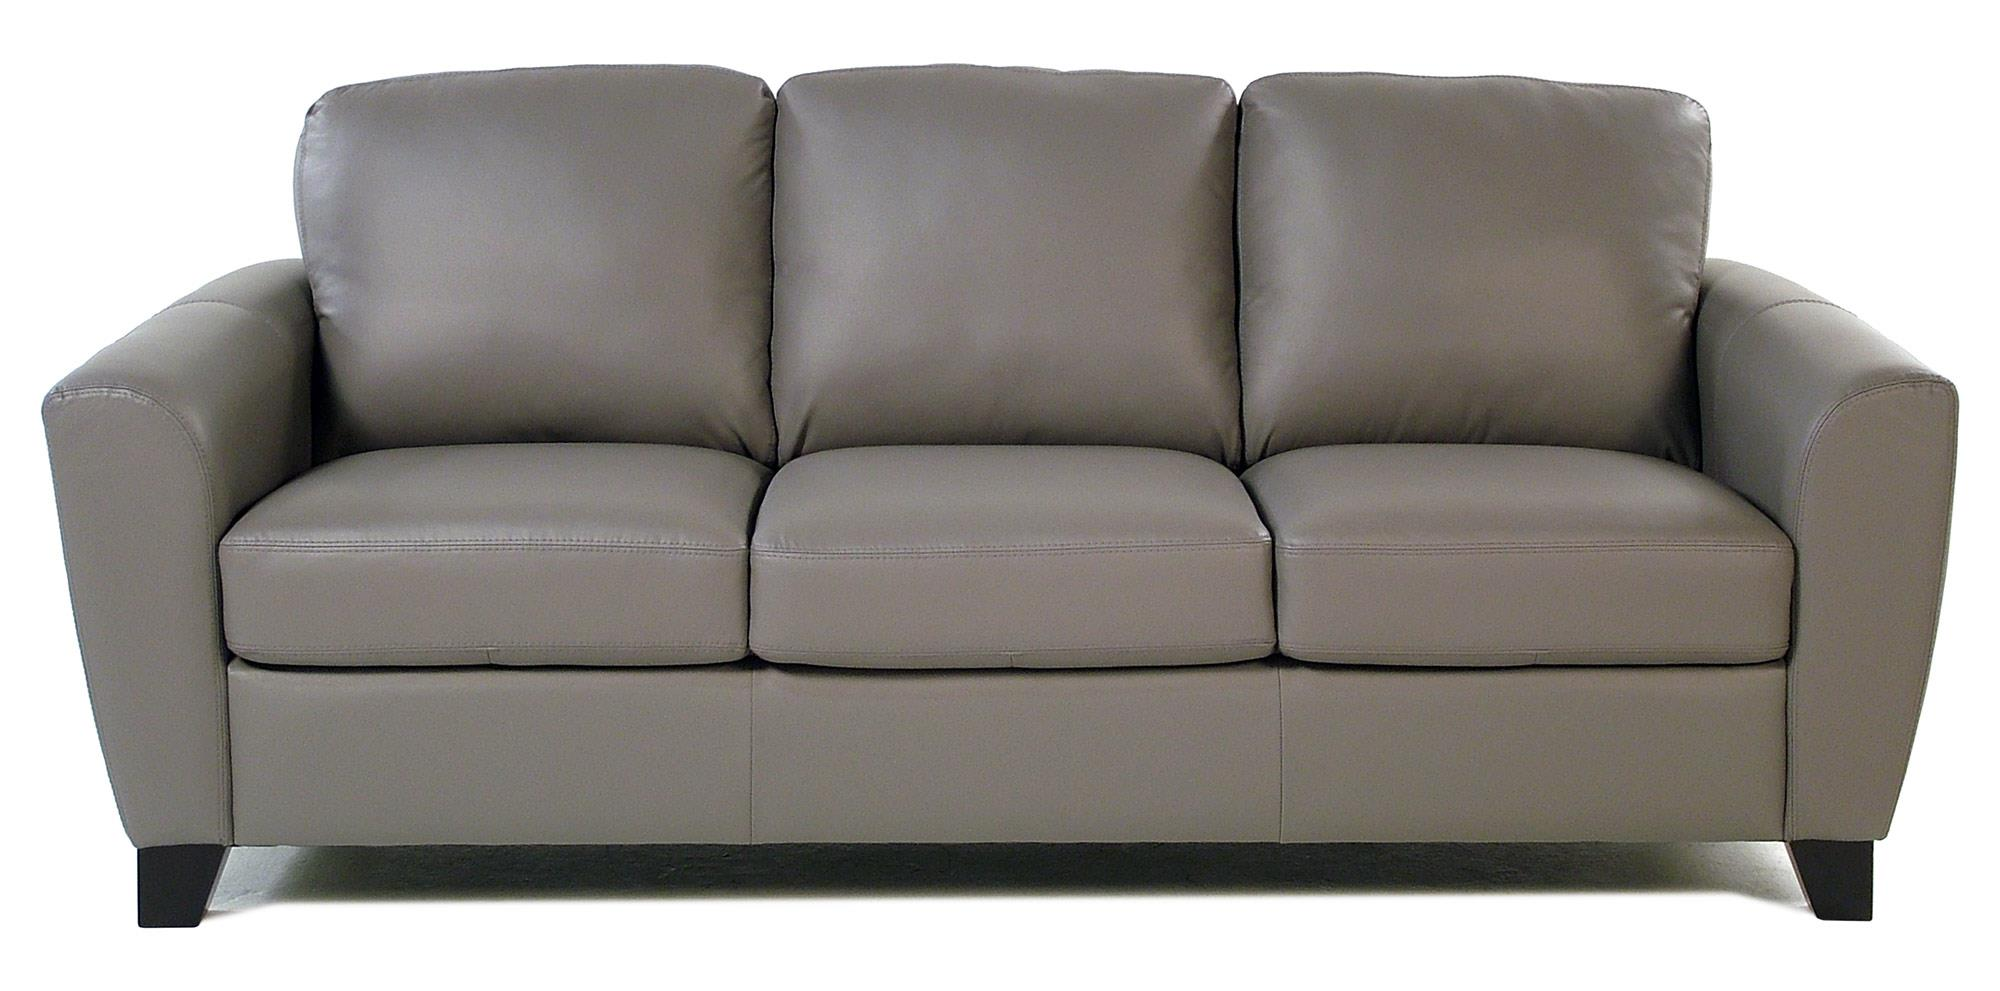 Stormy Contemporary Leather Sofa with Flair-Tapered Arms by Palliser at  Rotmans